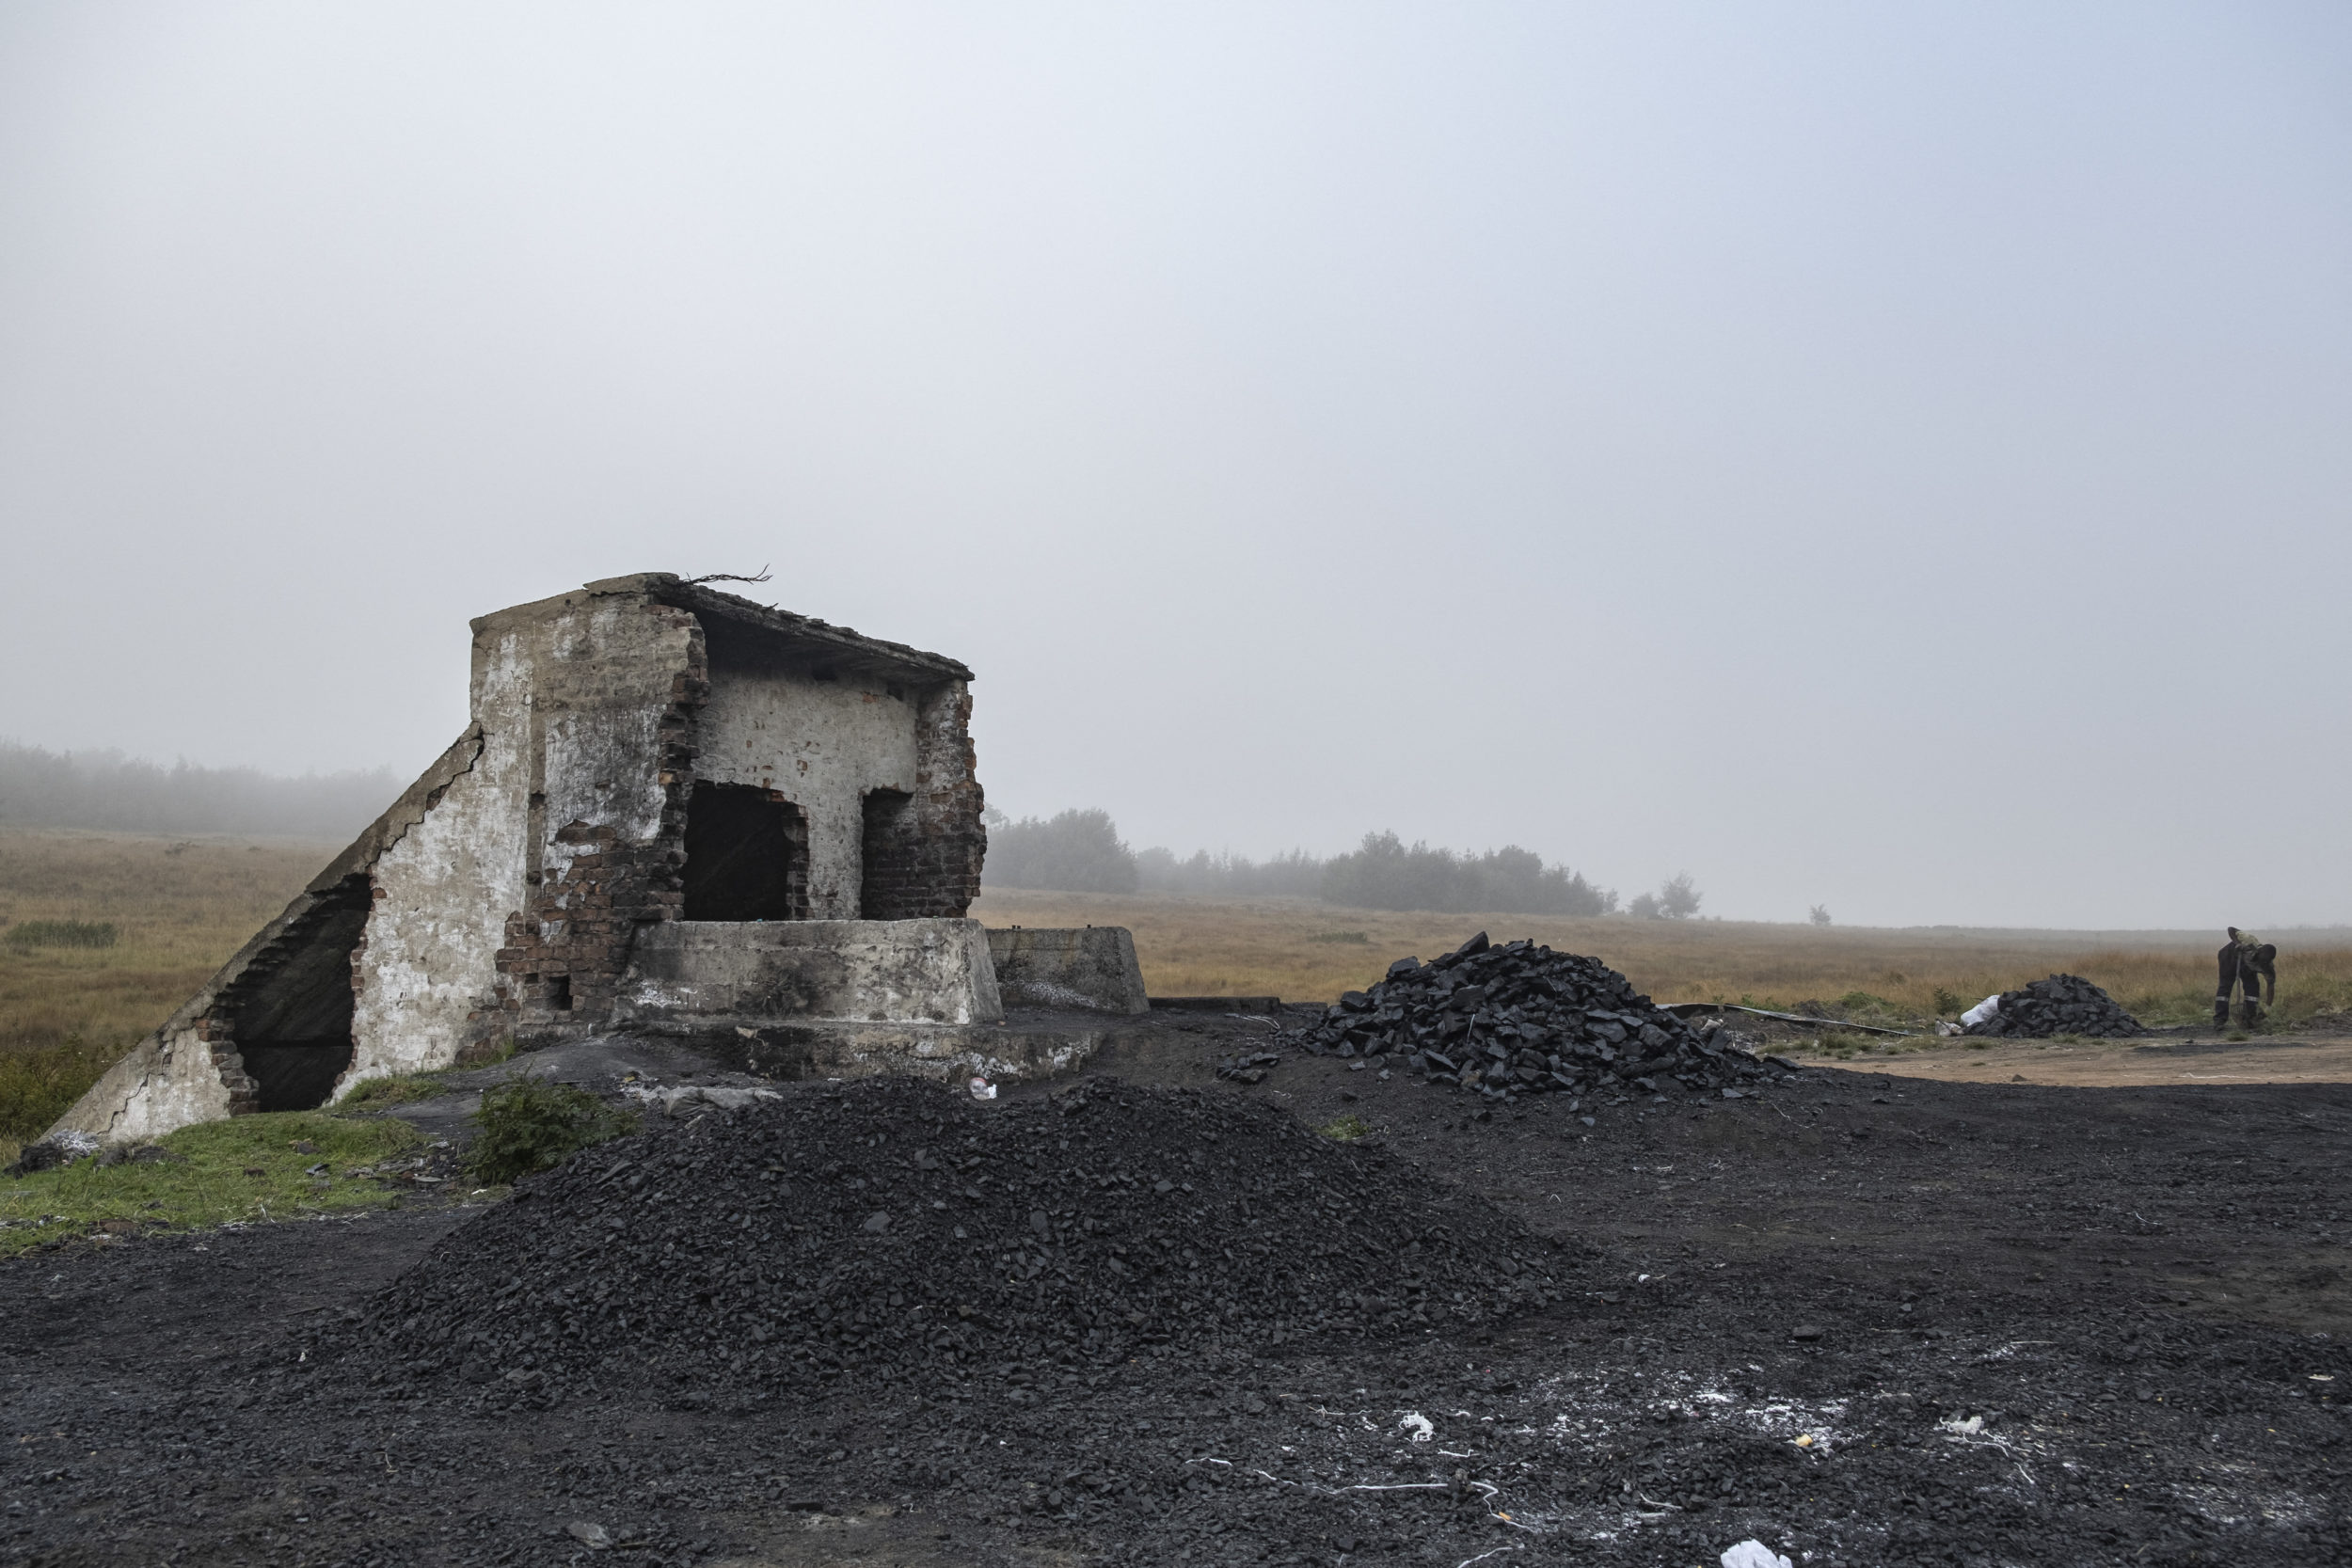 A general view of the Goldview coal mine entrance in Ermelo on 21 April 2021. After spending a night underground, breaking off, bagging and lugging coal, Bonginkosi makes a pile of coal at the entrance of the mine before a truck collects the ore for sale. Picture: Emmanuel Croset/AFP